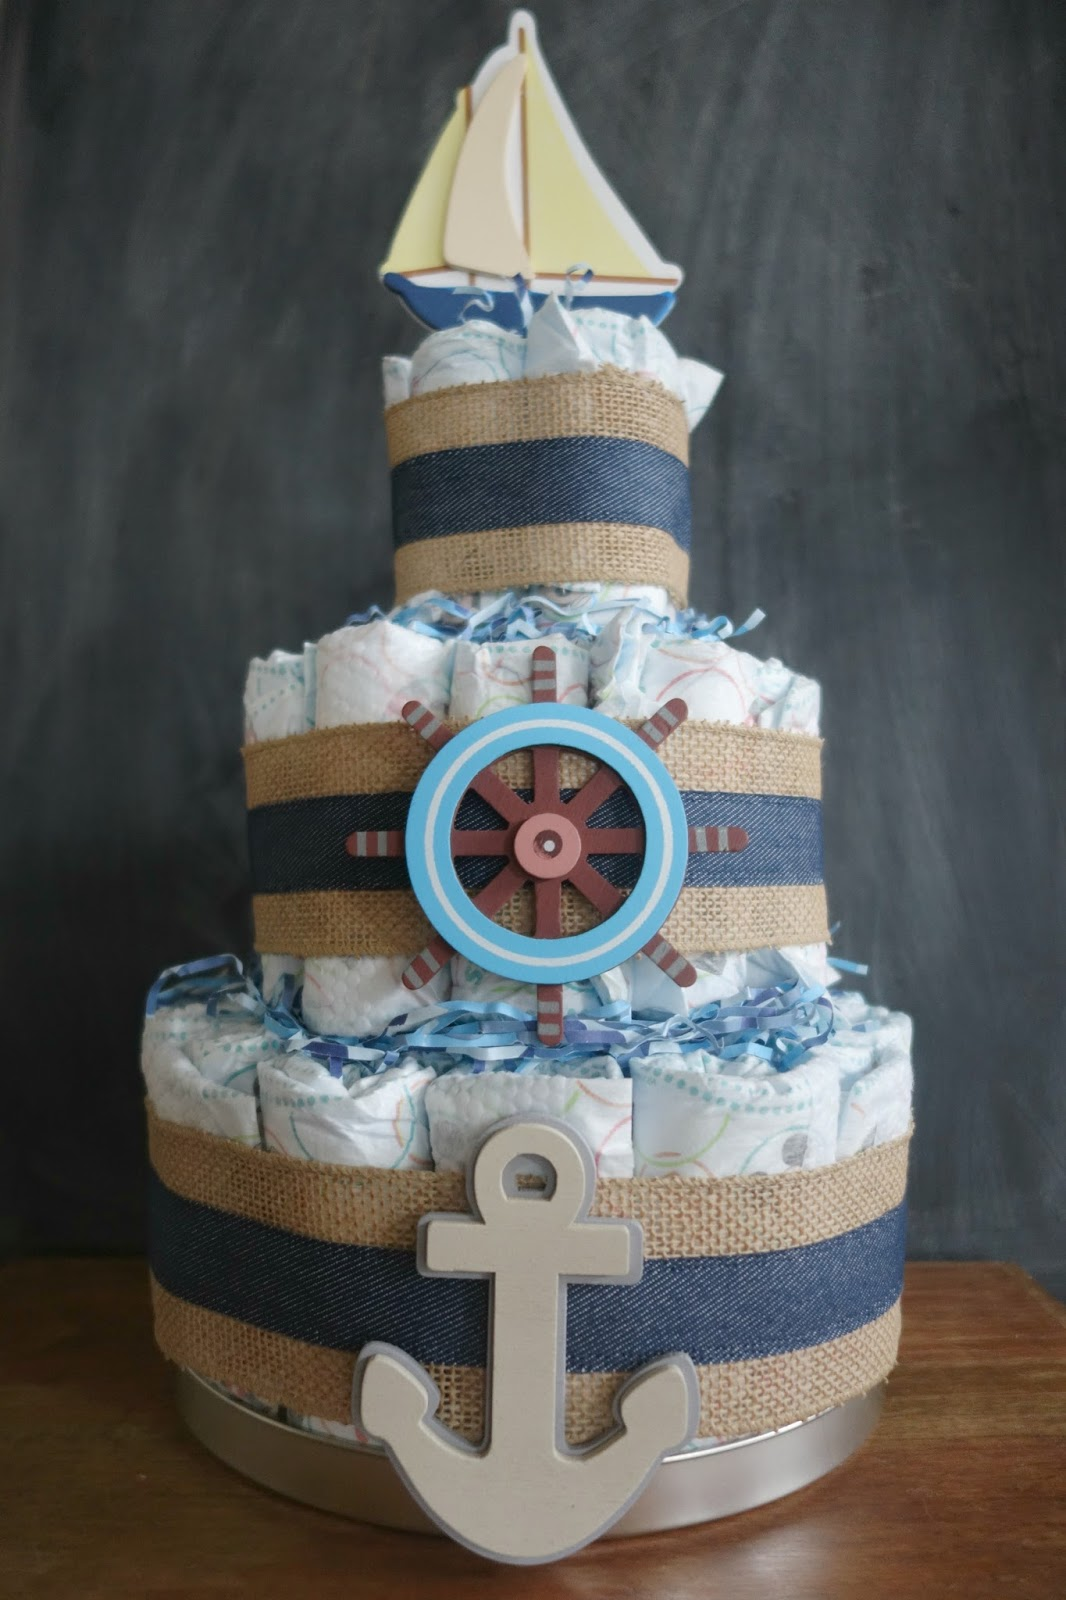 How To Store Diapers From Diaper Cake